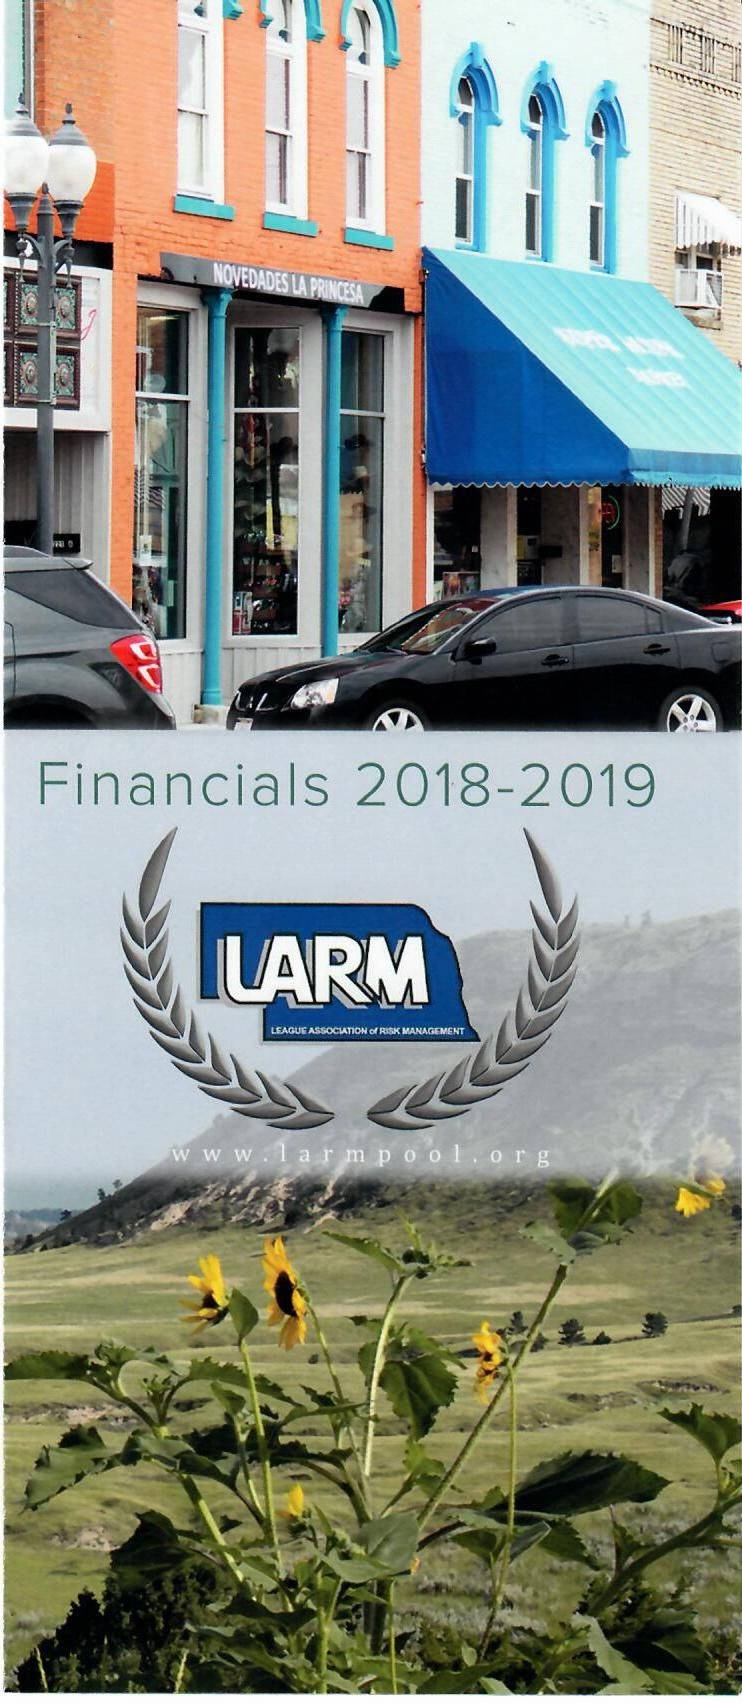 Solid, Stable, Secure- LARM's Financials for 2018/2019